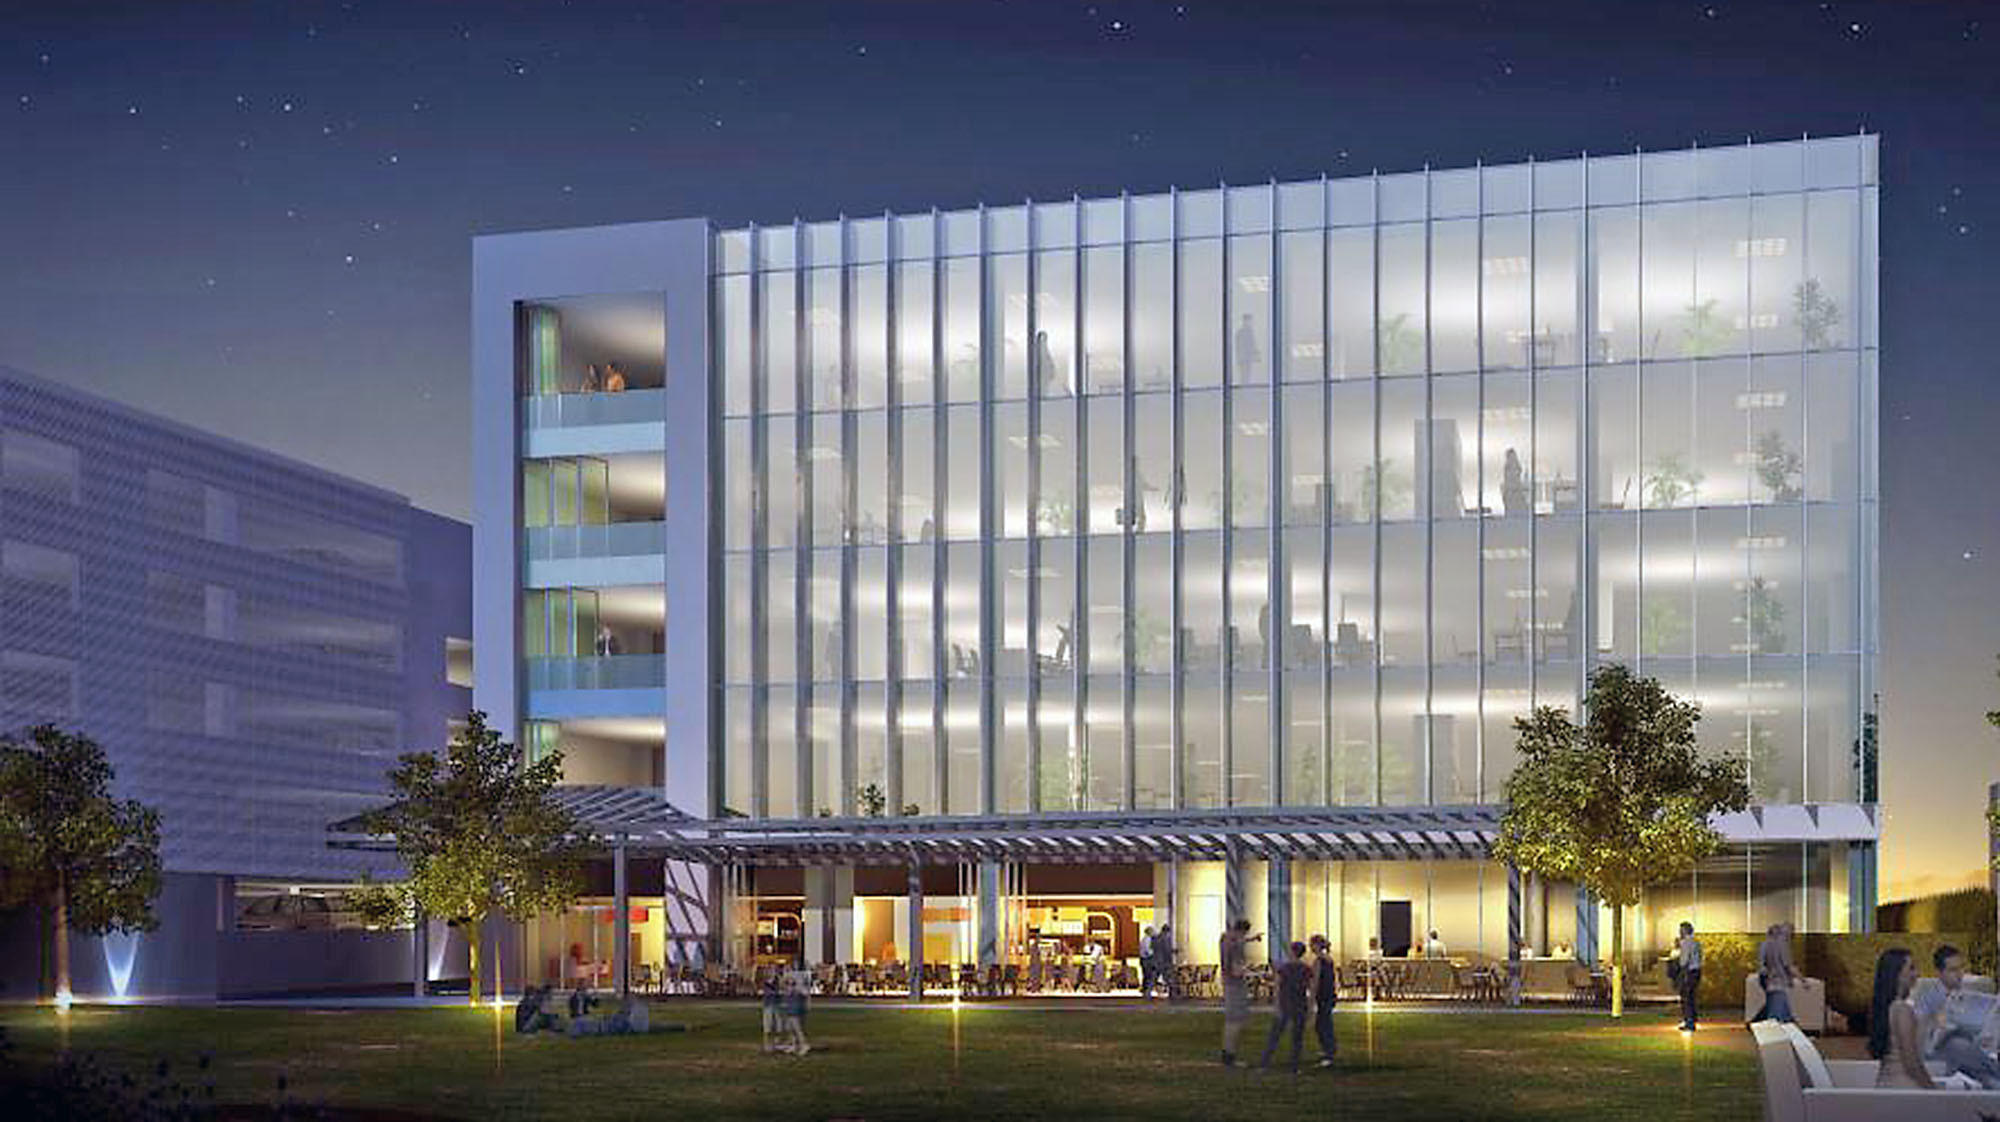 A rendering of a 113,760-square-foot office building proposed to be built at 203 W. Olive Ave. in Burbank. Plans for the project went before the Burbank Planning Board on Monday.